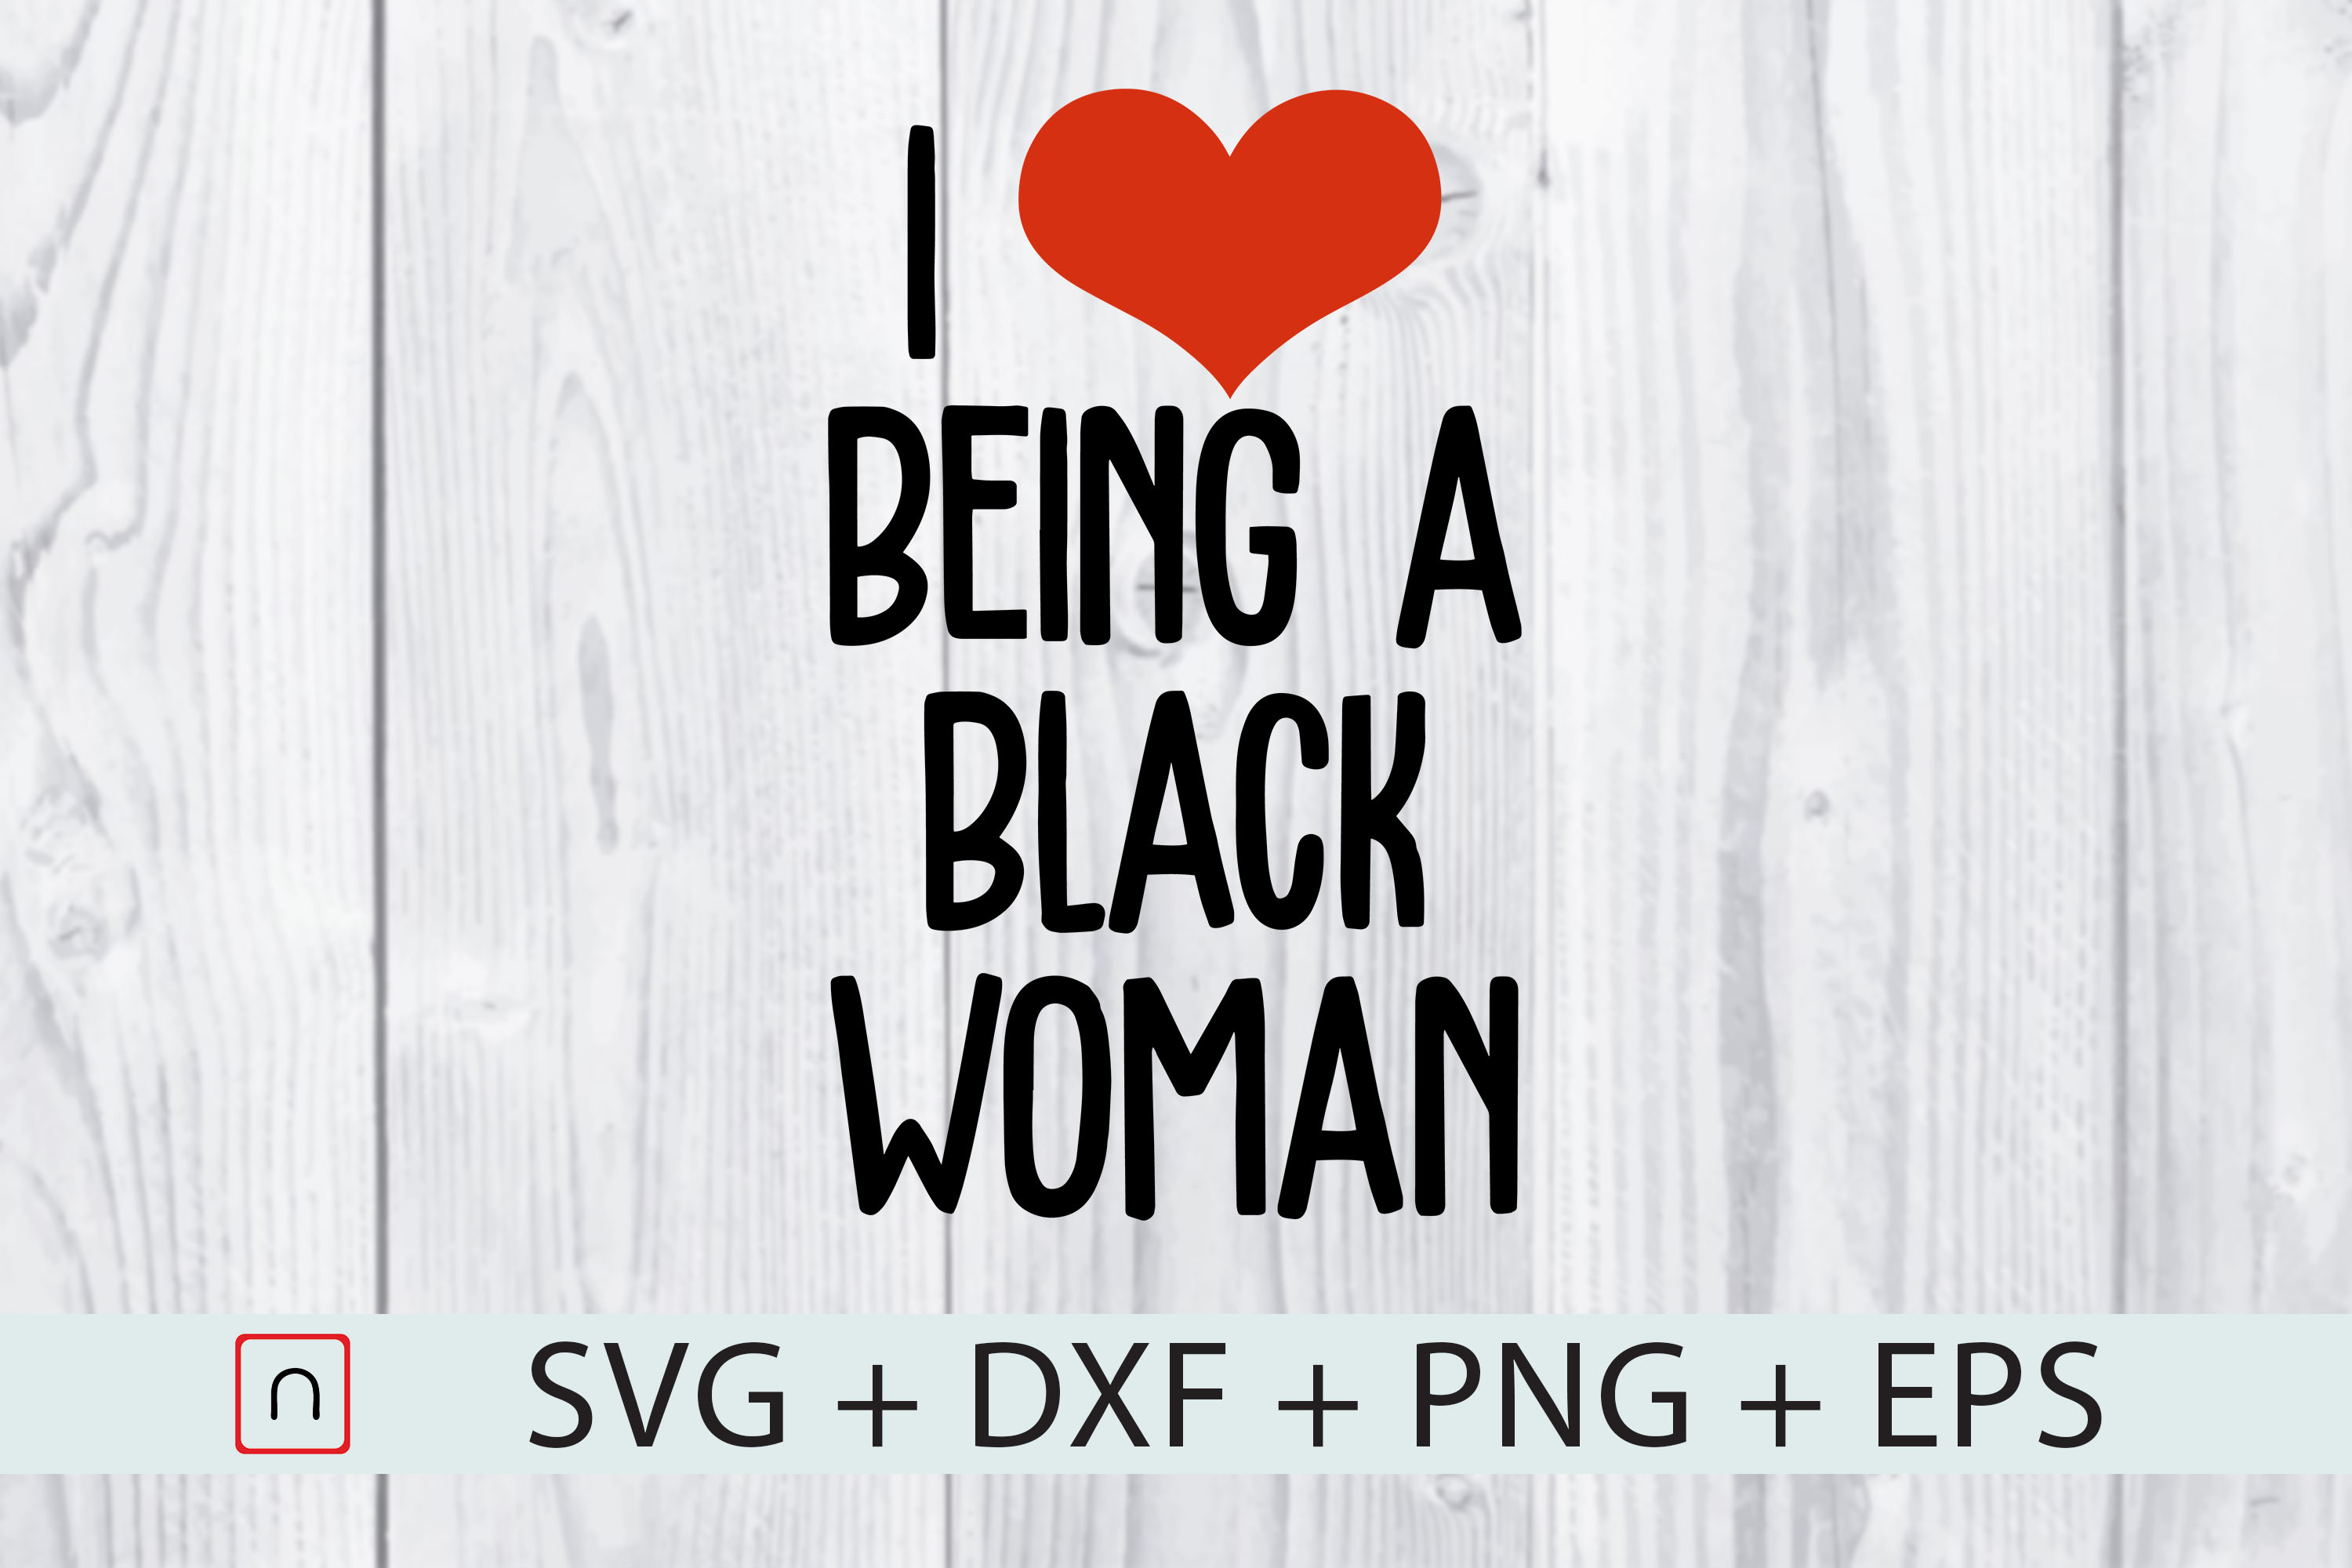 Download Free I Love Being A Black Woman Graphic By Novalia Creative Fabrica for Cricut Explore, Silhouette and other cutting machines.